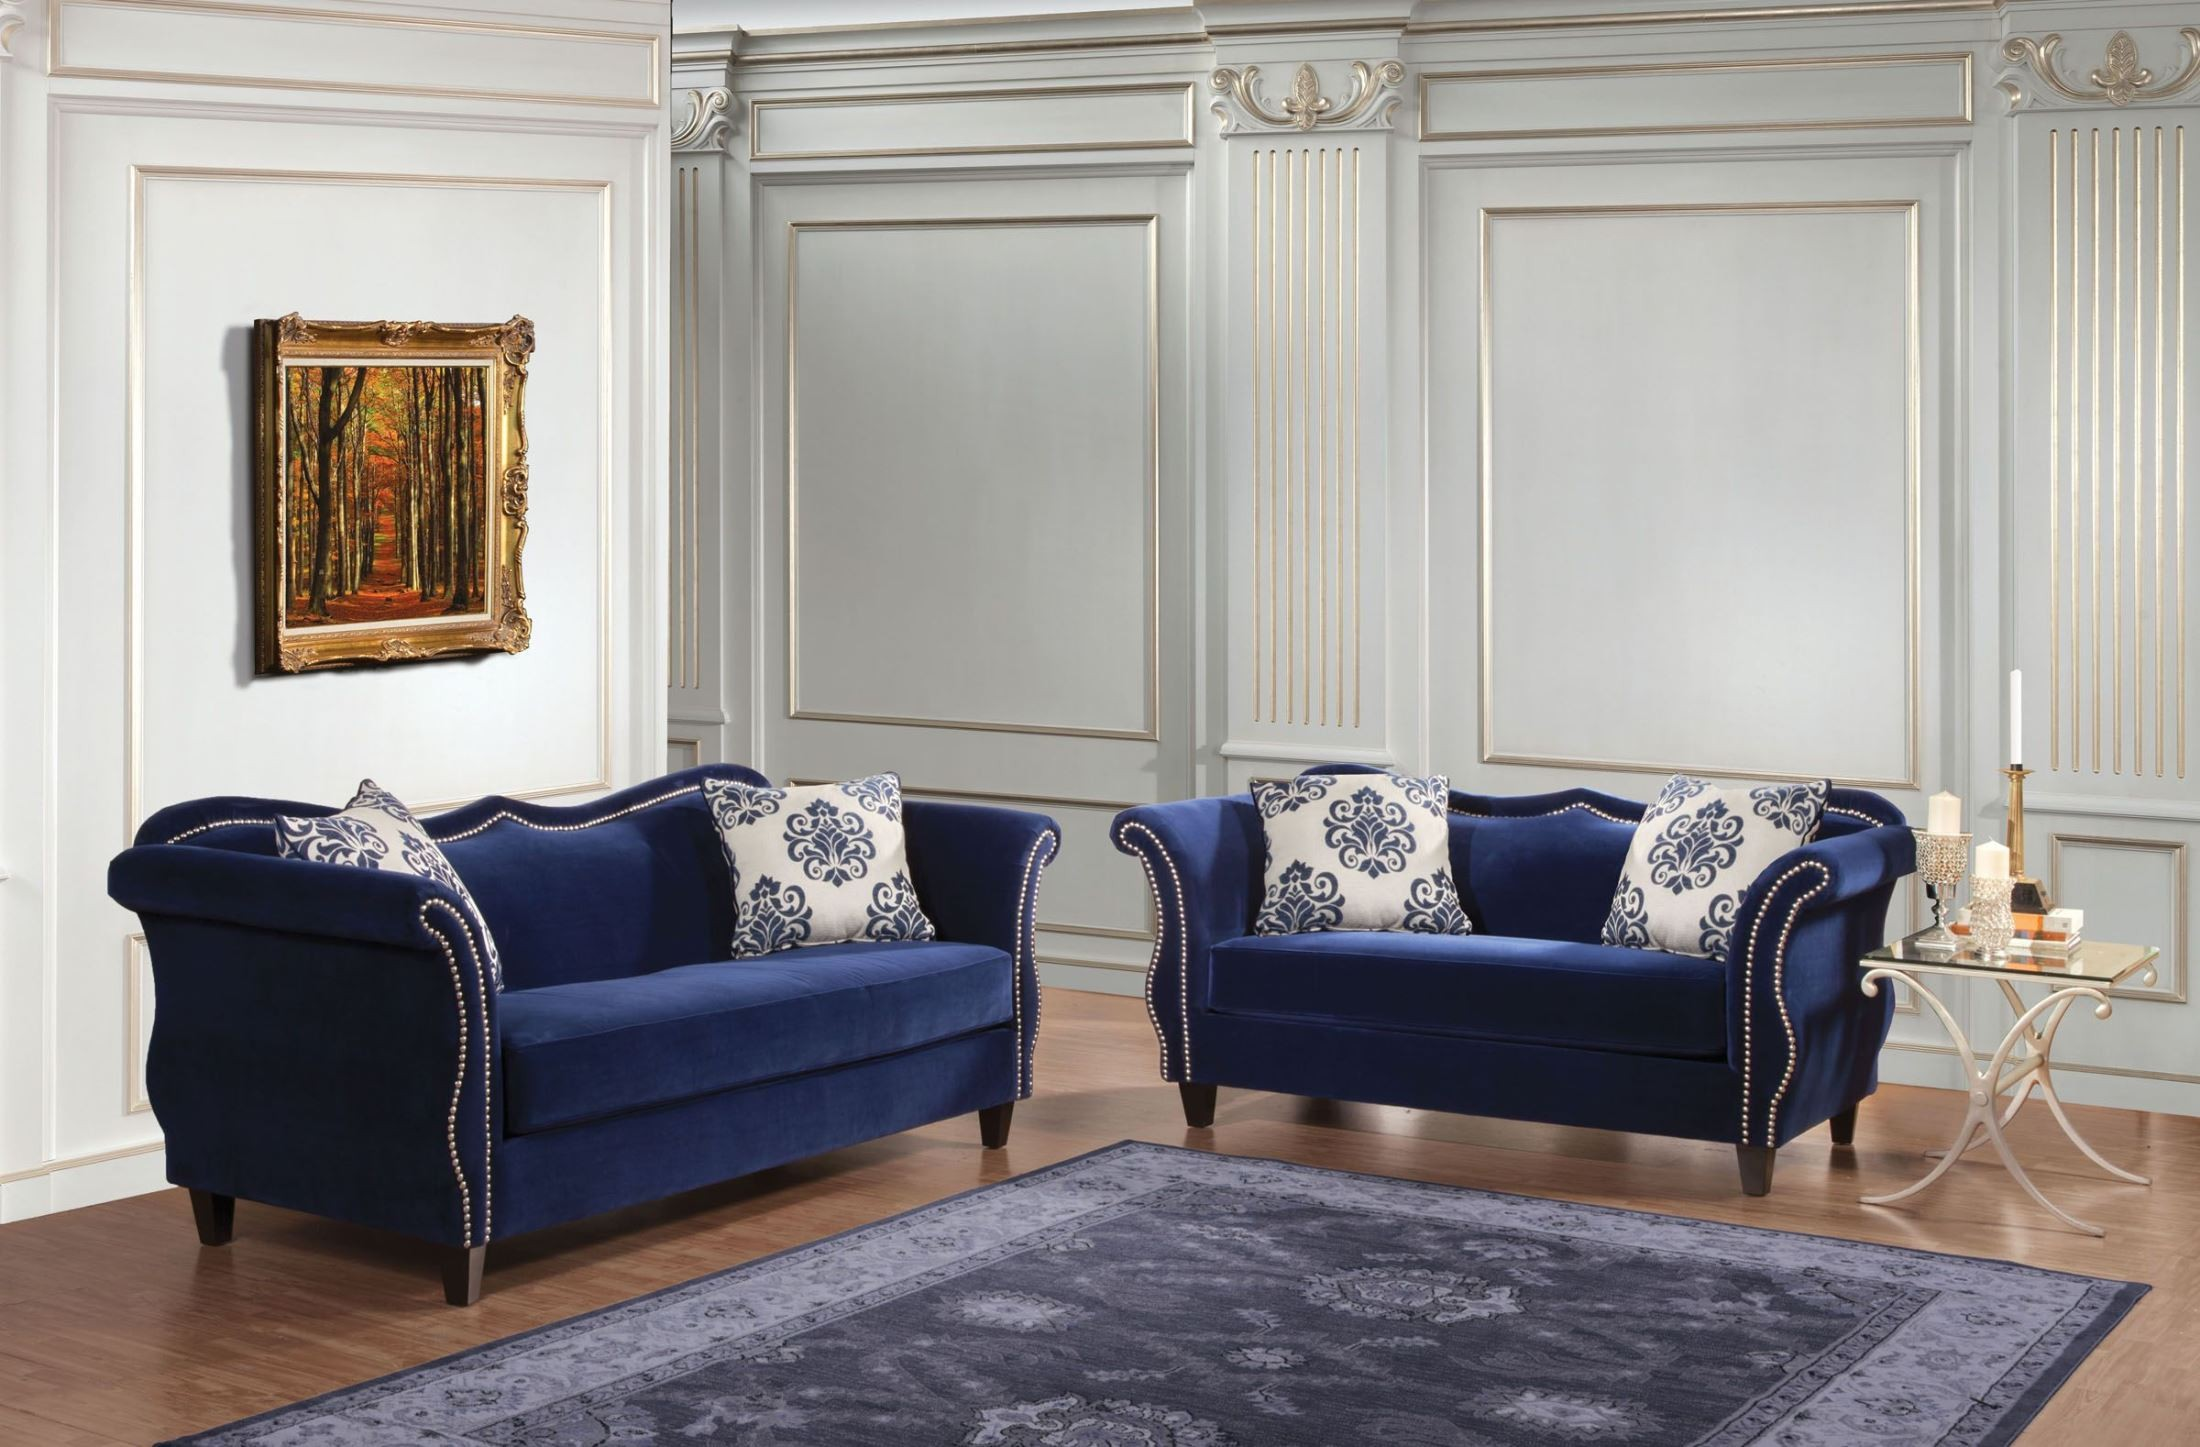 Zaffiro Royal Blue Living Room Set SM2231 SF Furniture